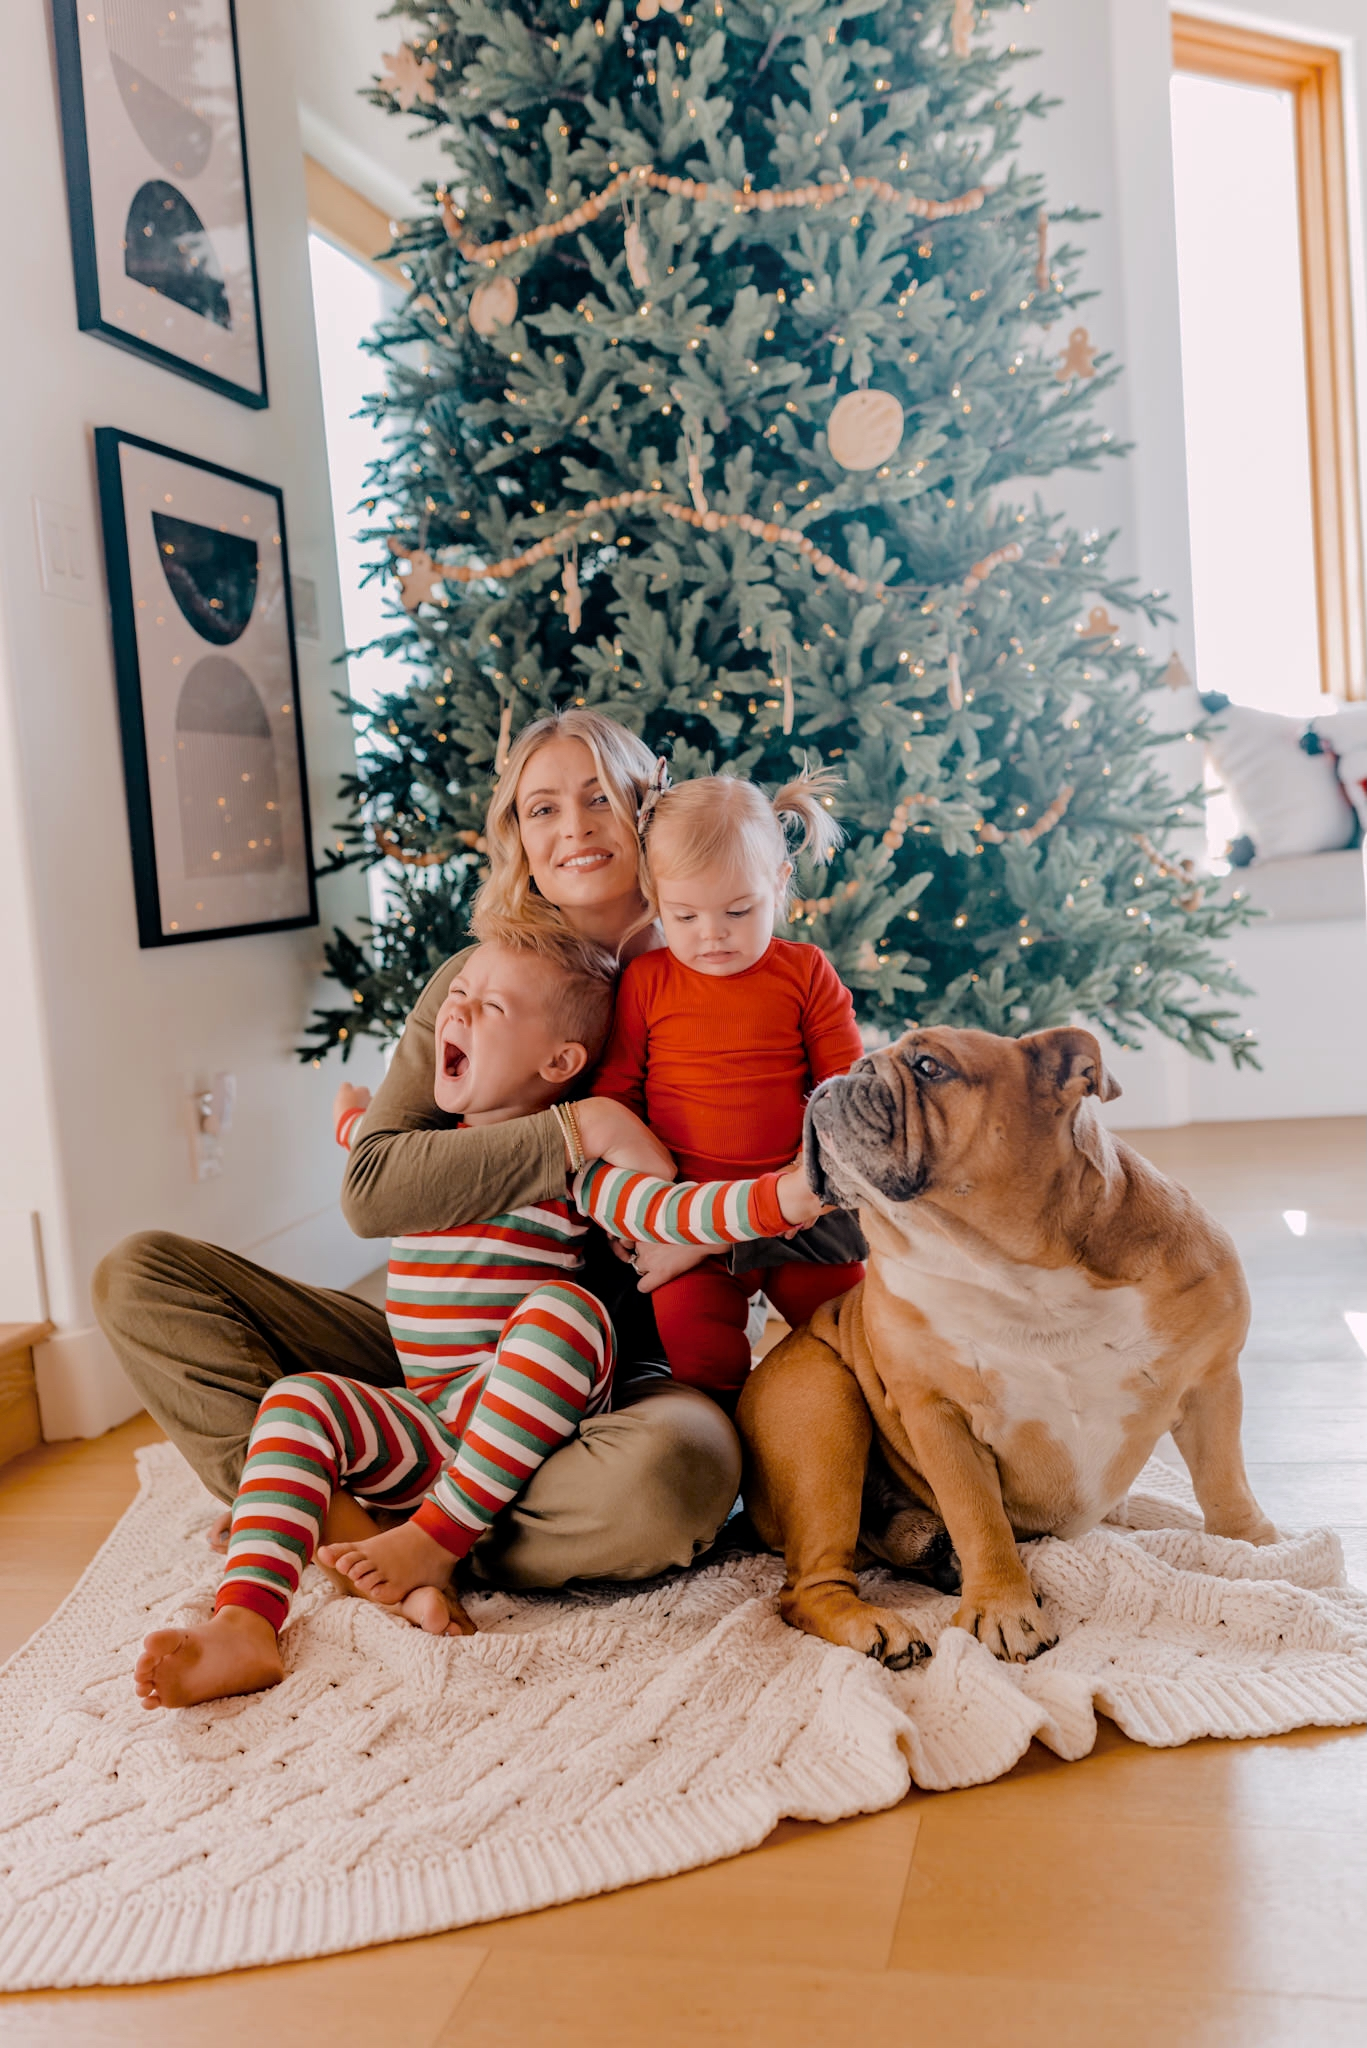 Stocking Stuffers for the Entire Family - Navy Grace - Camilla Thurman |Stocking Stuffers by popular San Diego life and style blog, Navy Grace: image of Camila Thurman and her two kids wearing Christmas pajamas and sitting on a knit blanket in front of their Christmas tree with their dog.